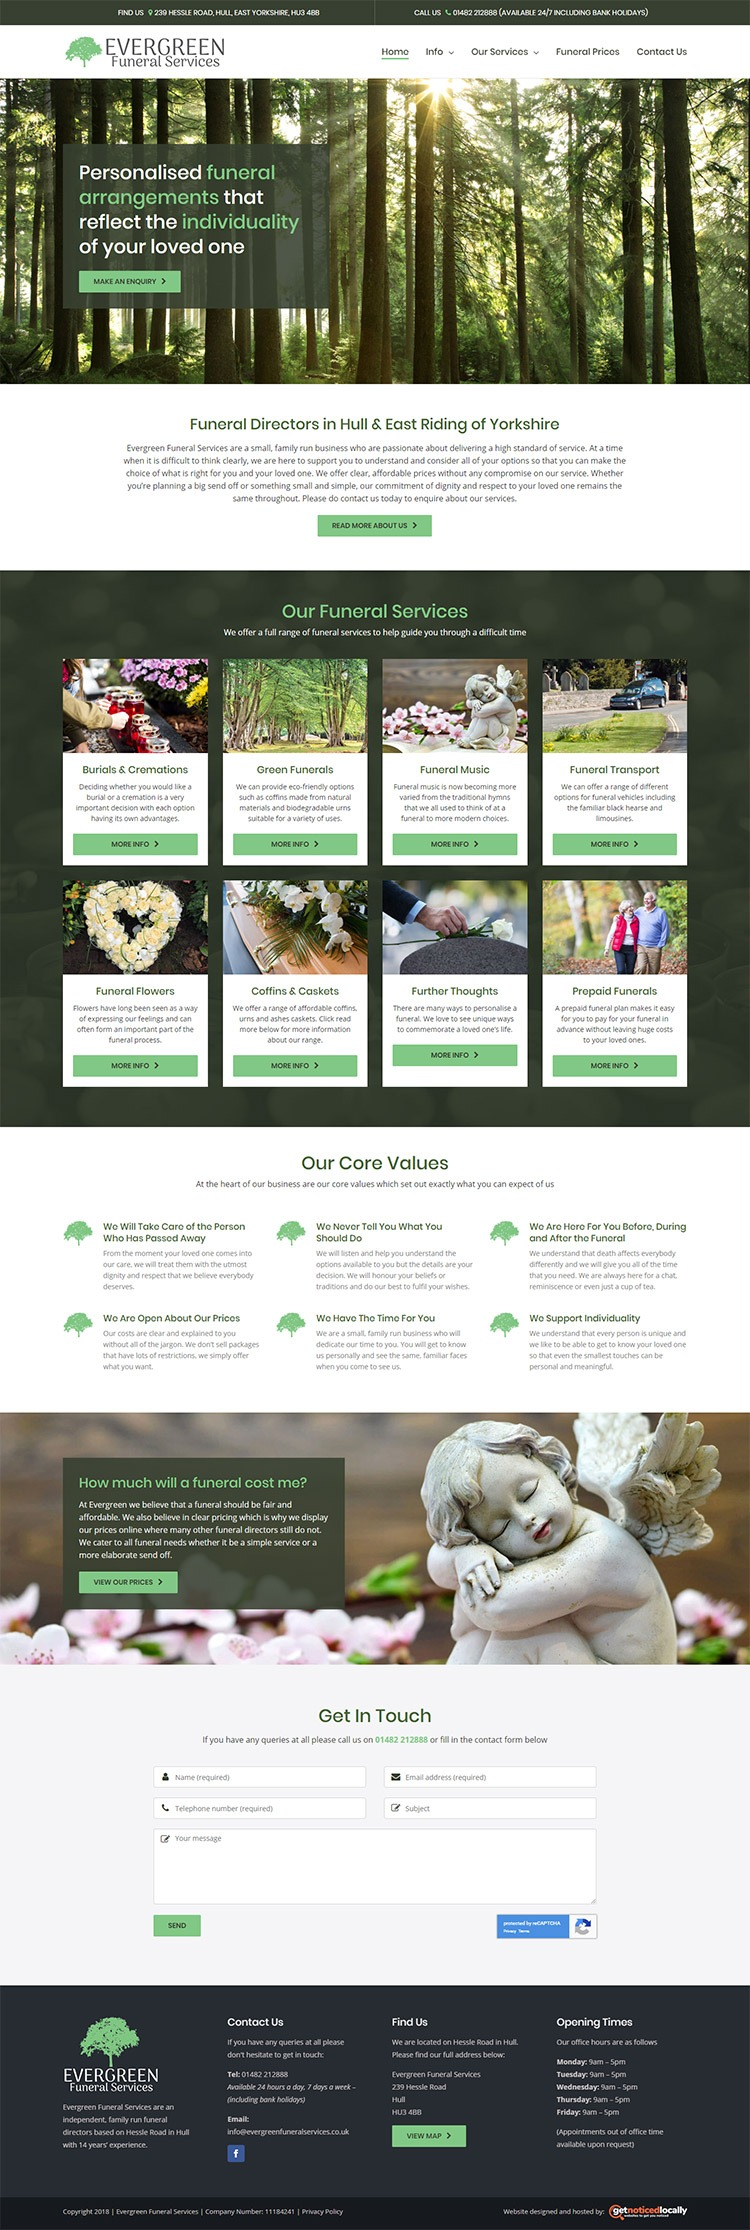 Evergreen Funeral services website layout Hull